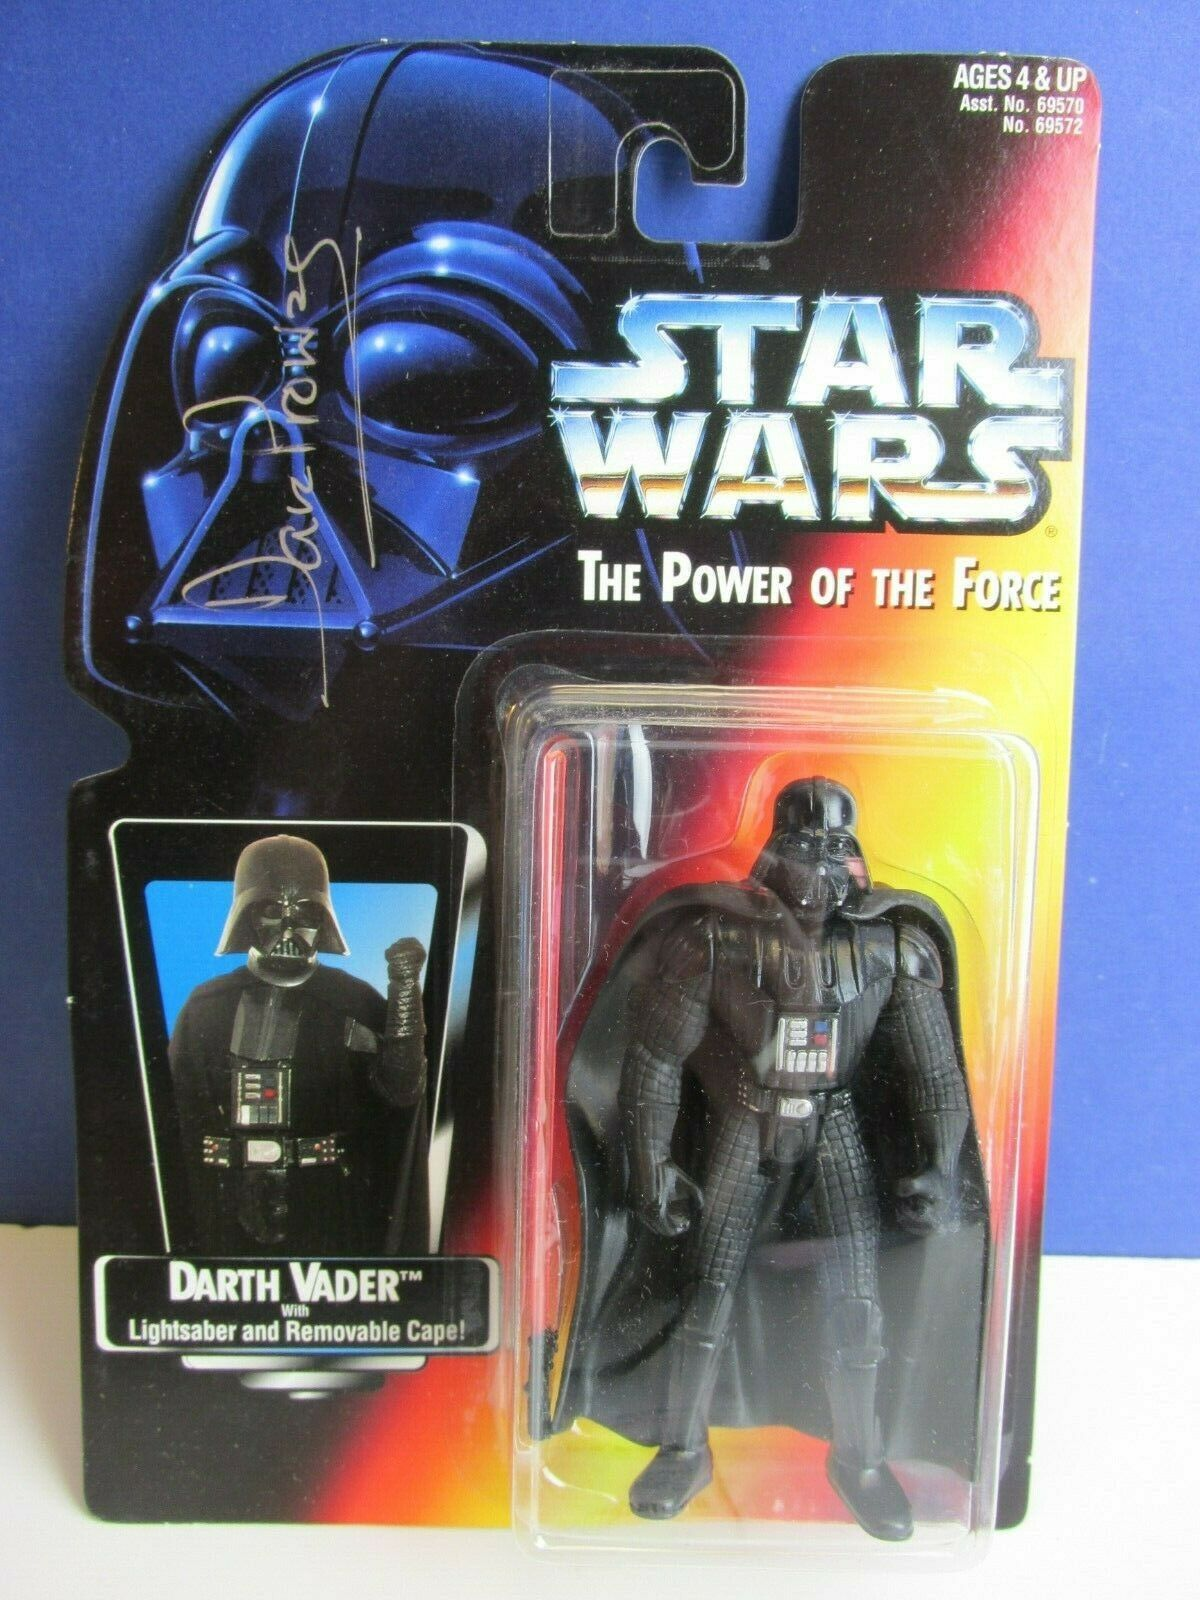 SIGNED BY DAVID PROWSE star wars DARTH VADER ACTION FIGURE POTF2 autograph 30R